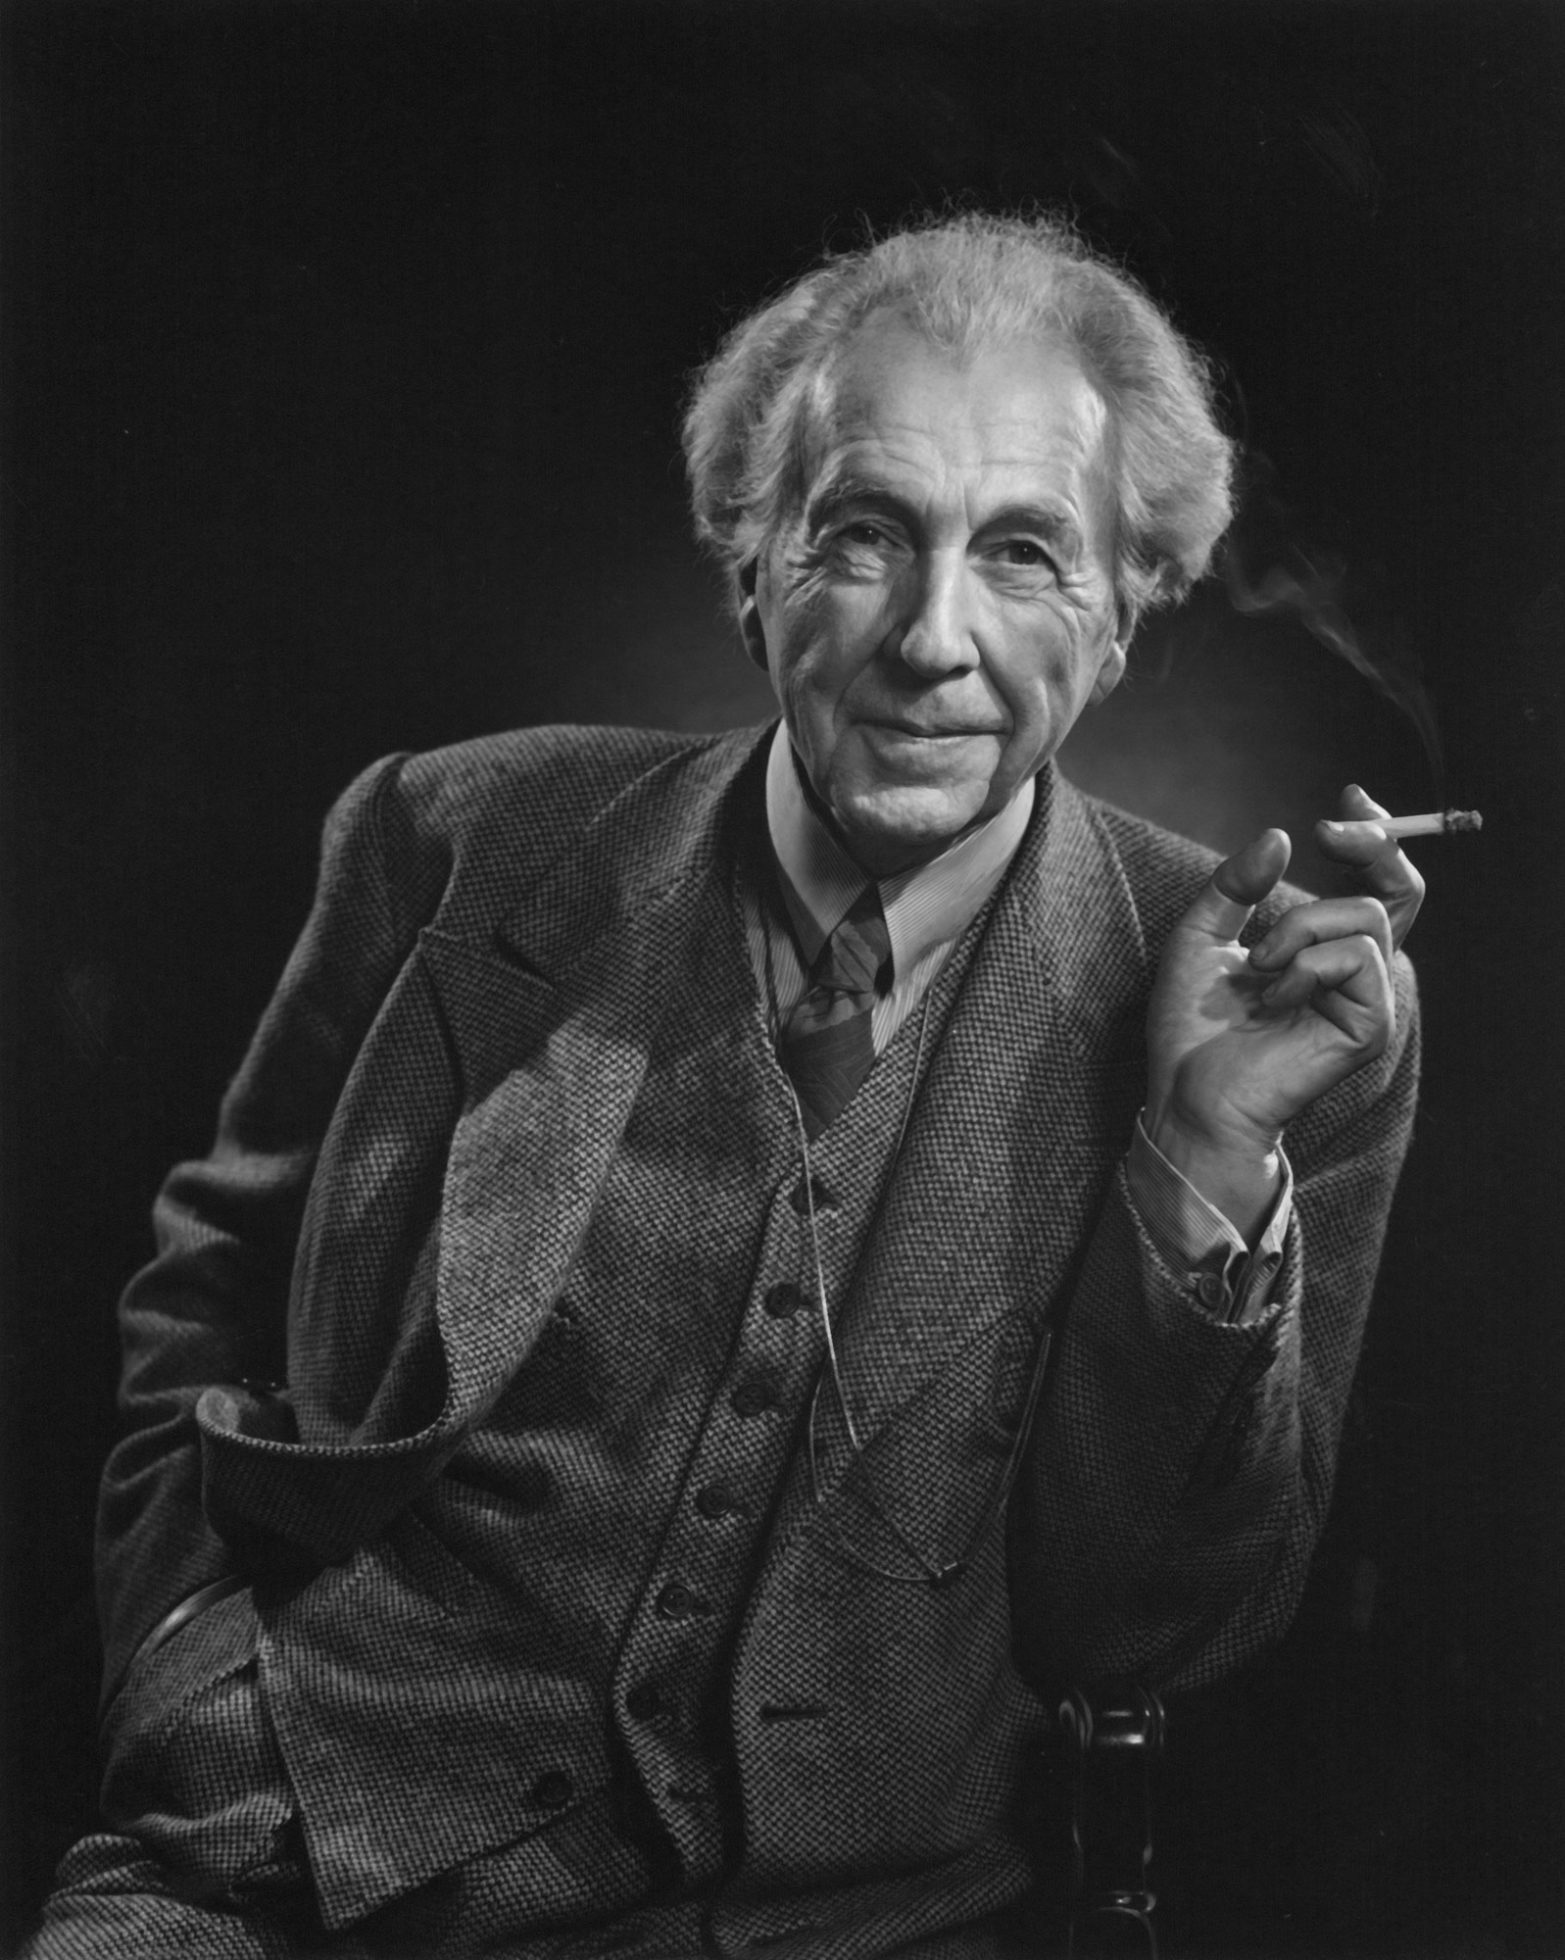 overview of the life of frank lloyd wright Frank lloyd wright (1867-1959) was not only a radical architect but also  over  the course of wright's astonishing career, which spanned 70 years,  while this  may not be an ideal introduction to wright, this is a show which.